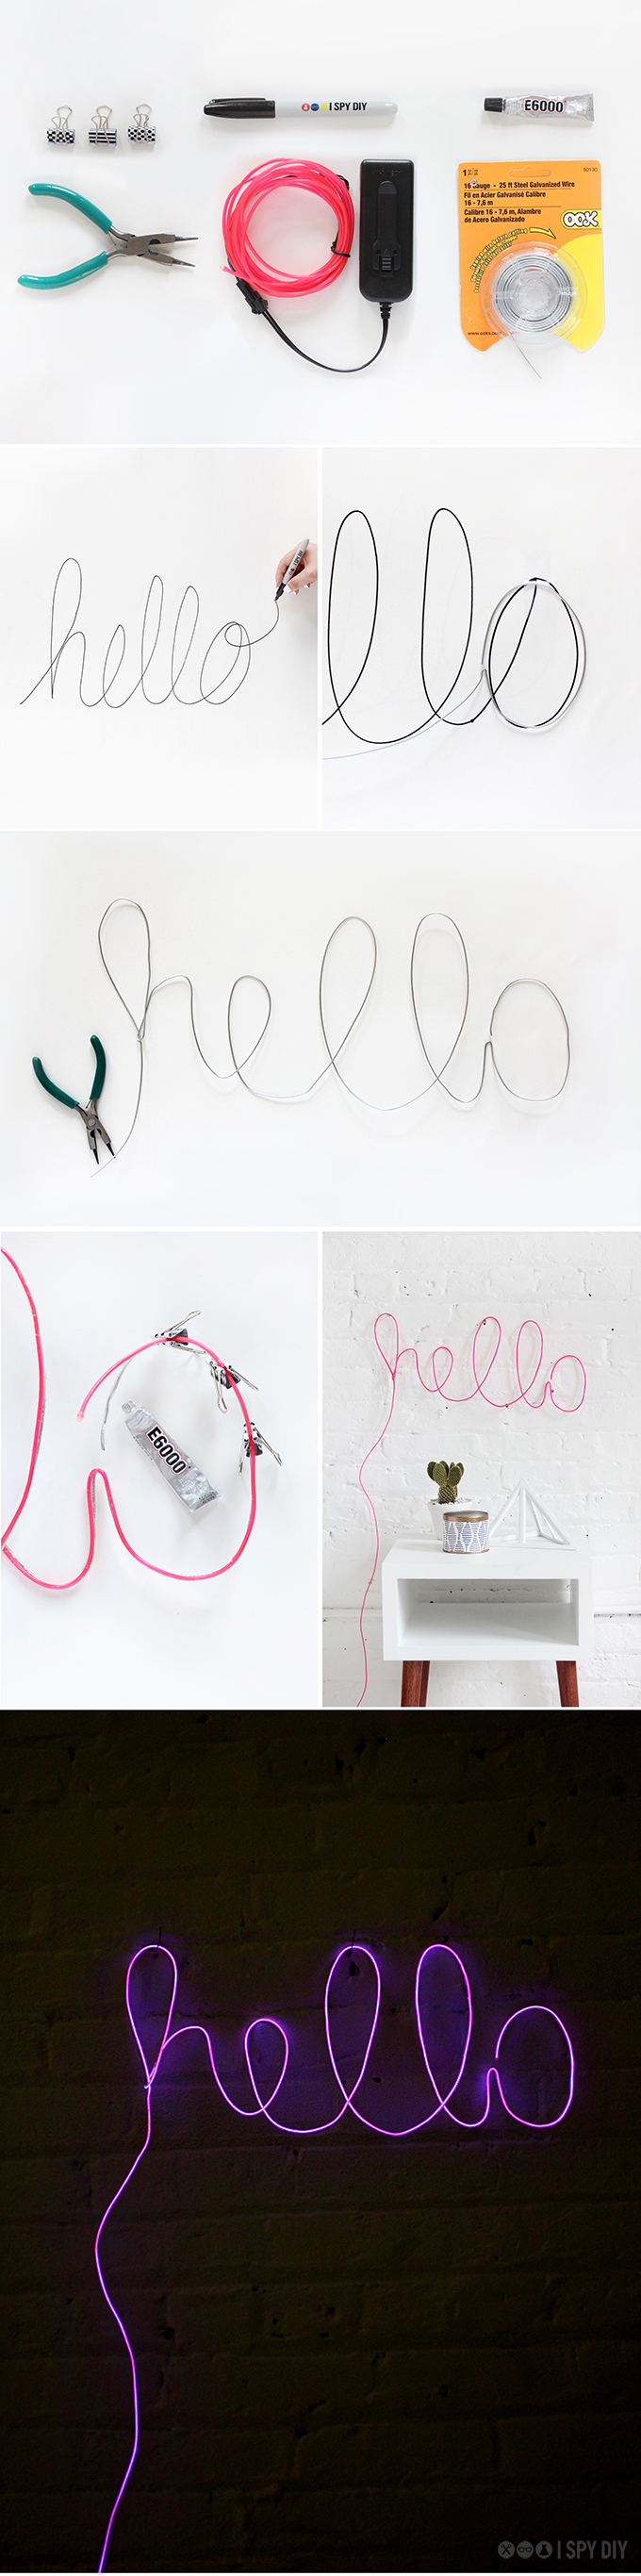 bulldog clips and a 3D marker, glue and pliers, light-up neon pink cord, and some wire, diy shining hello sign